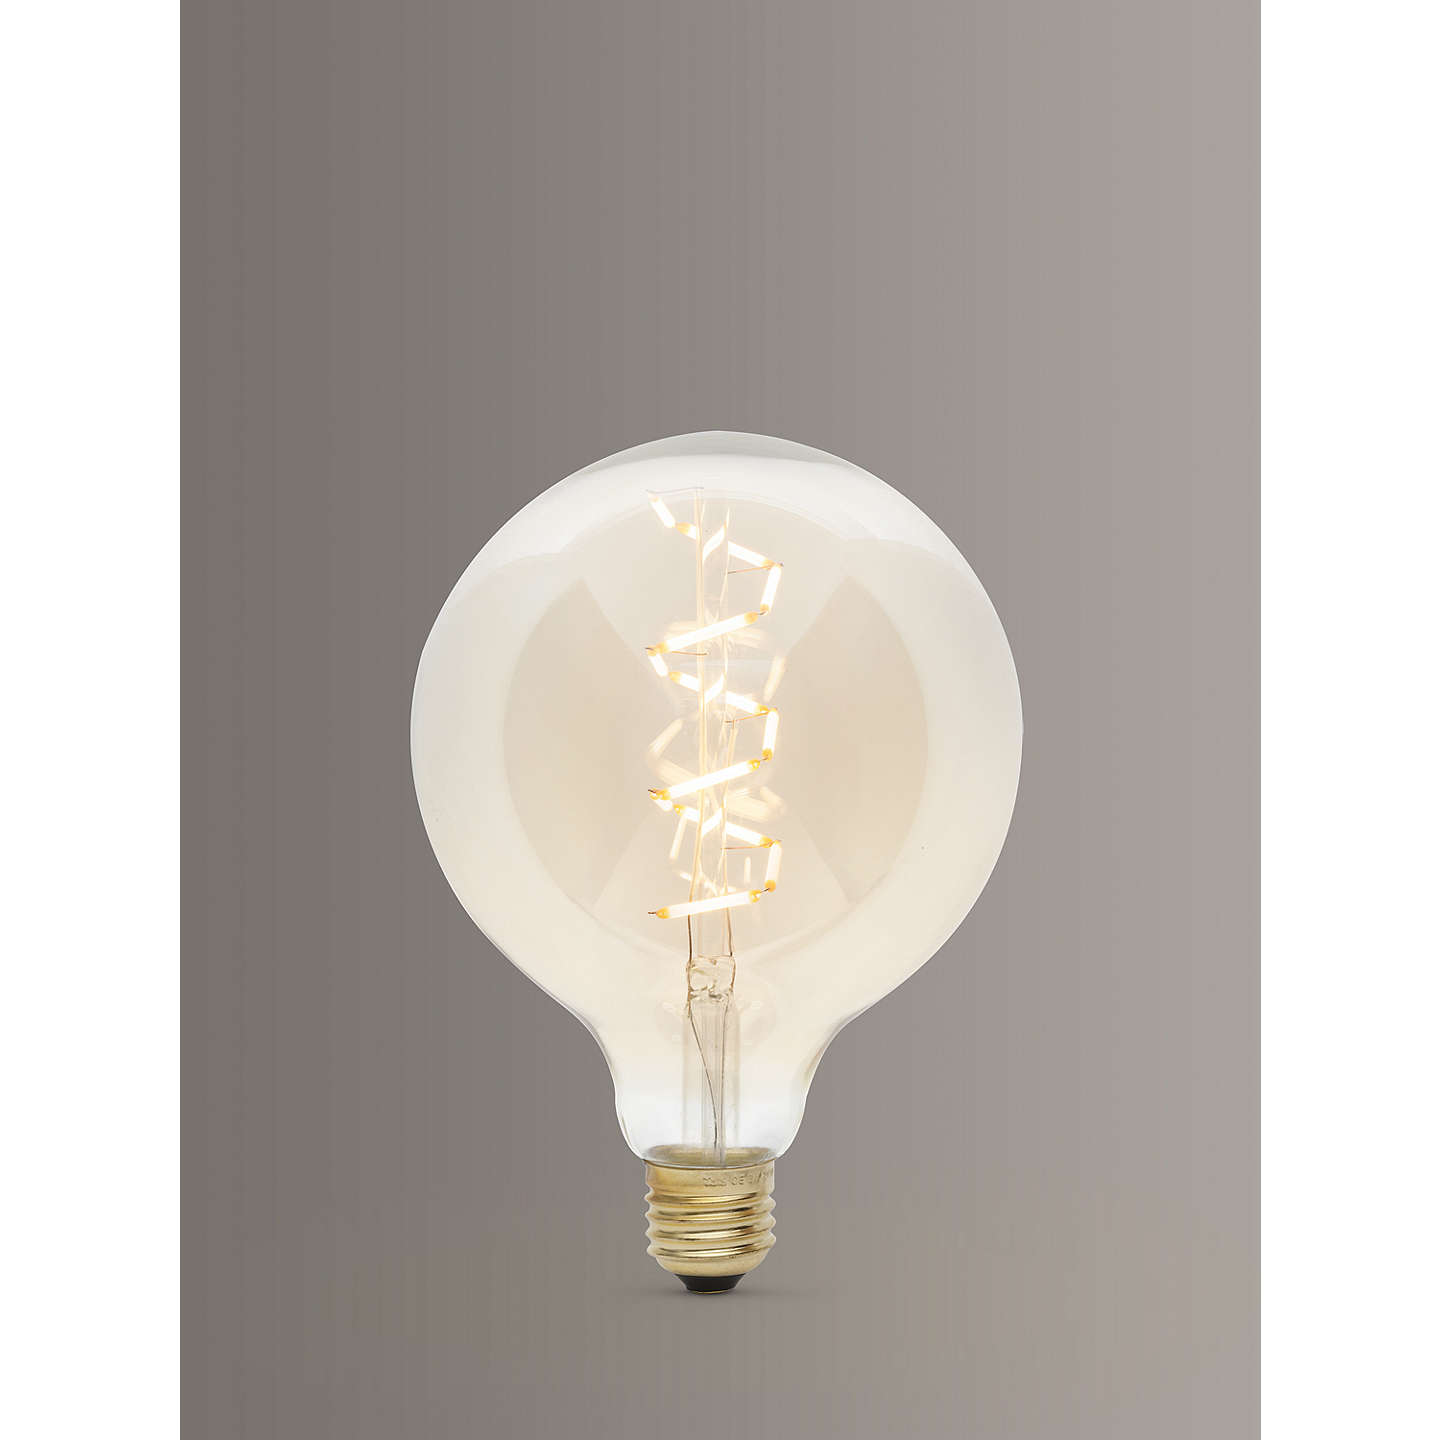 BuyTala LED Zion 6W LED ES Globe Bulb, Tinted / Clear, Dimmable Online at johnlewis.com